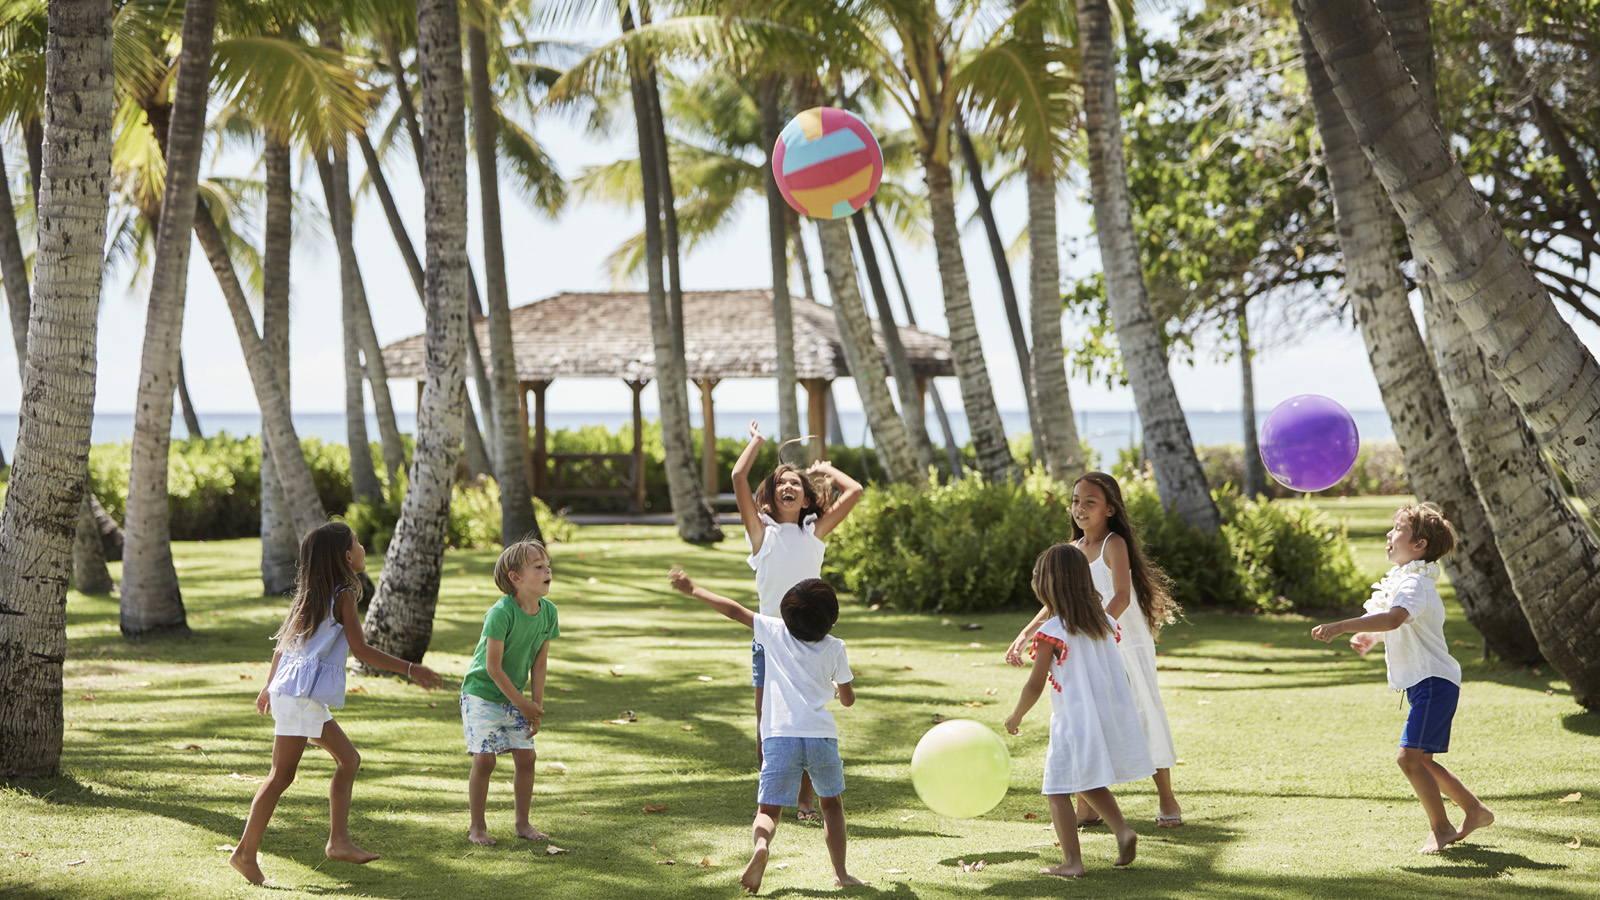 Image from https://press.fourseasons.com